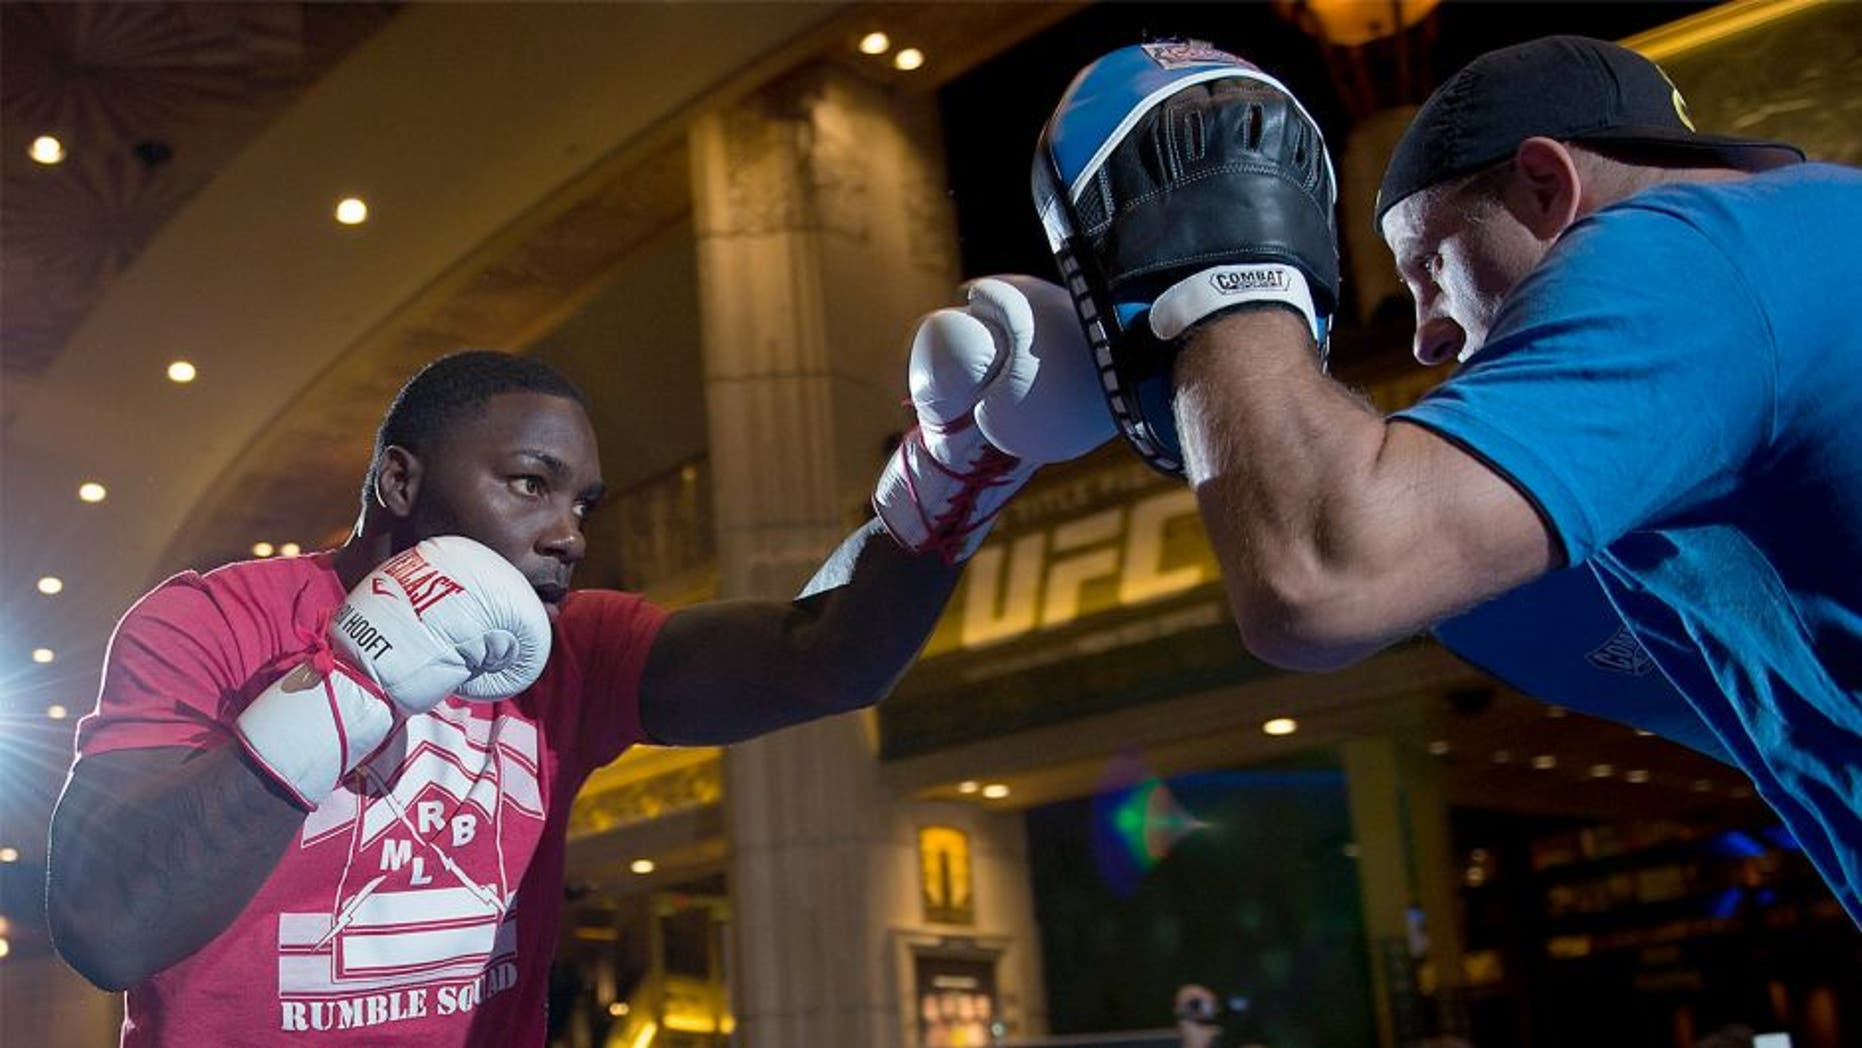 LAS VEGAS, NEVADA - MAY 20: Anthony Johnson (L) holds an open training session for fans and media at the MGM Grand Hotel/Casino on May 20, 2015 in Las Vegas Nevada. (Photo by Brandon Magnus/Zuffa LLC/Zuffa LLC via Getty Images)